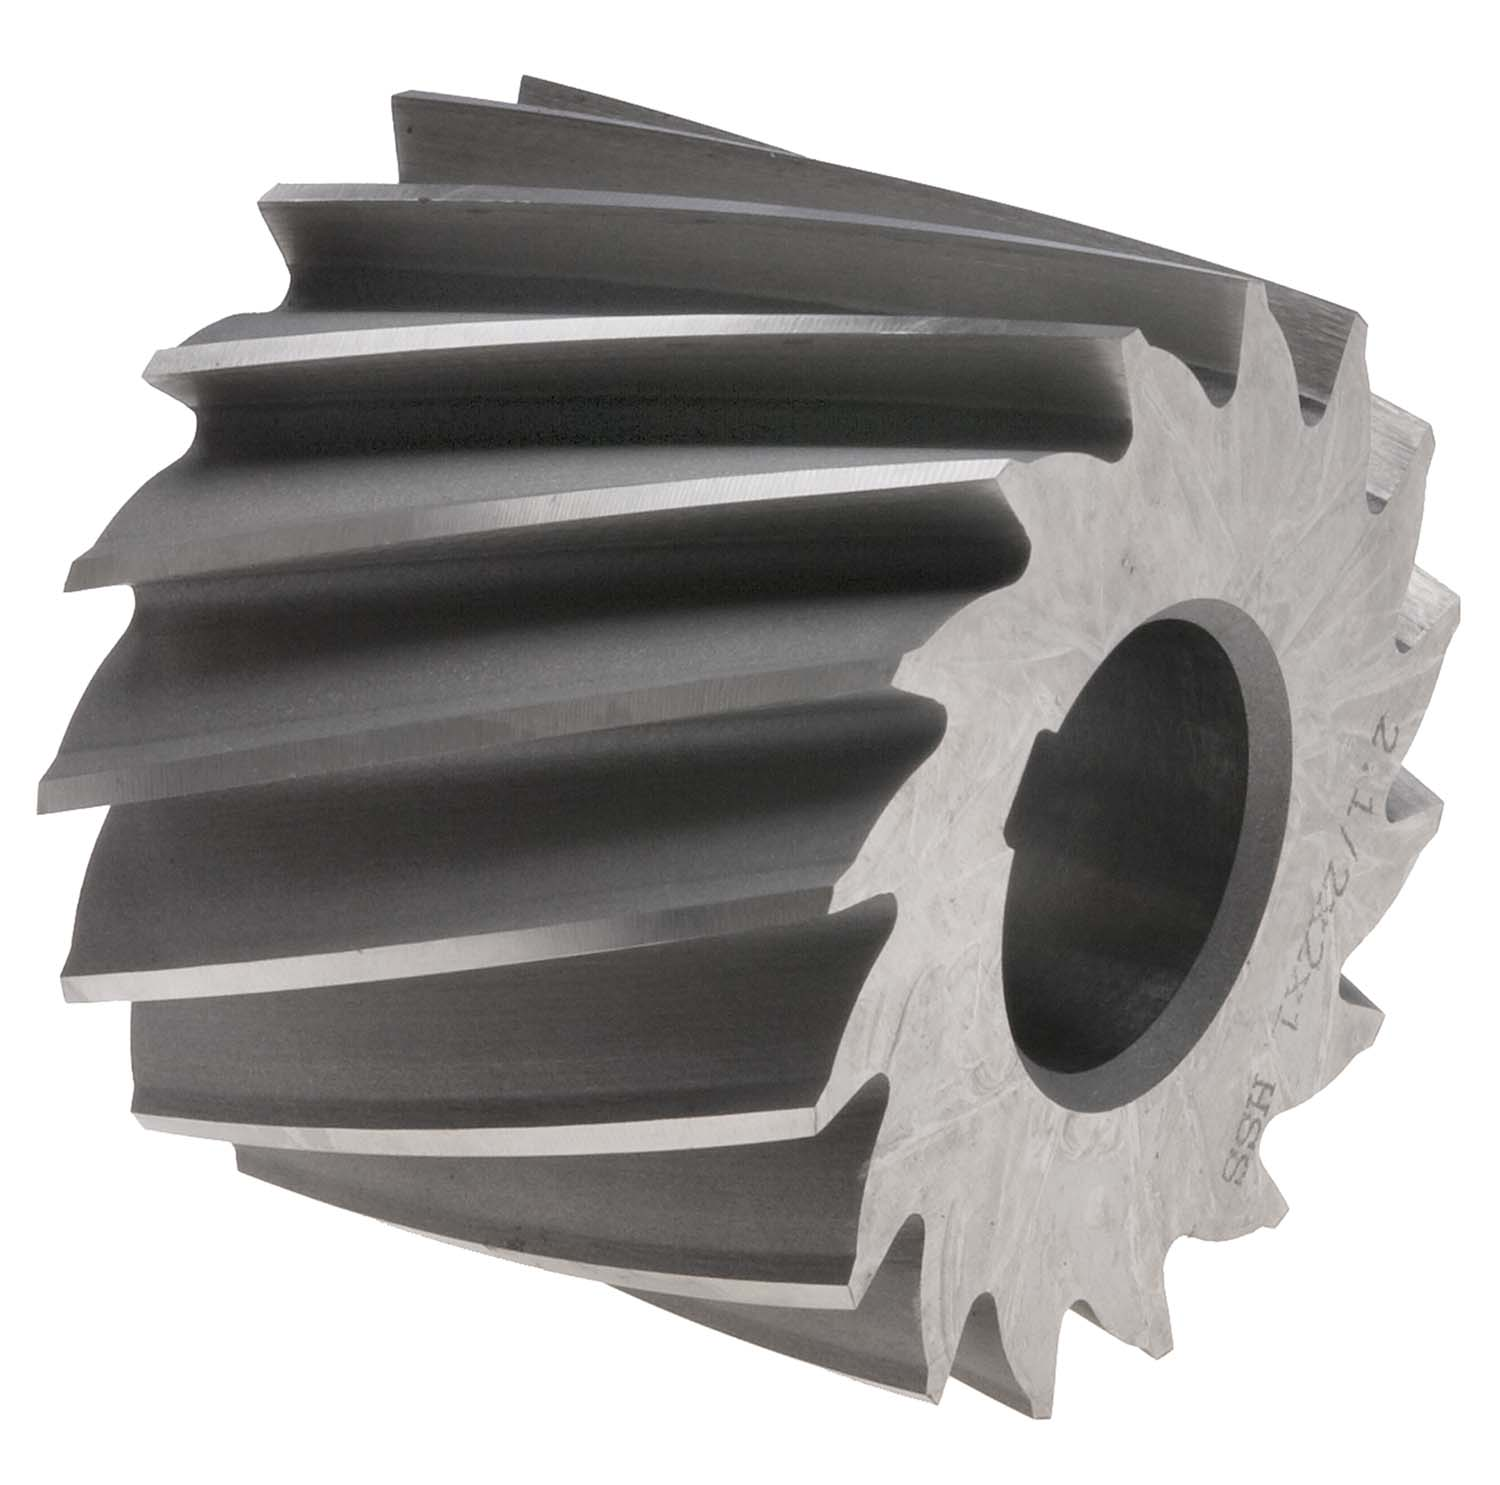 4 X 2 X 1-1/4 High Speed Steel Plain Mill Cutter